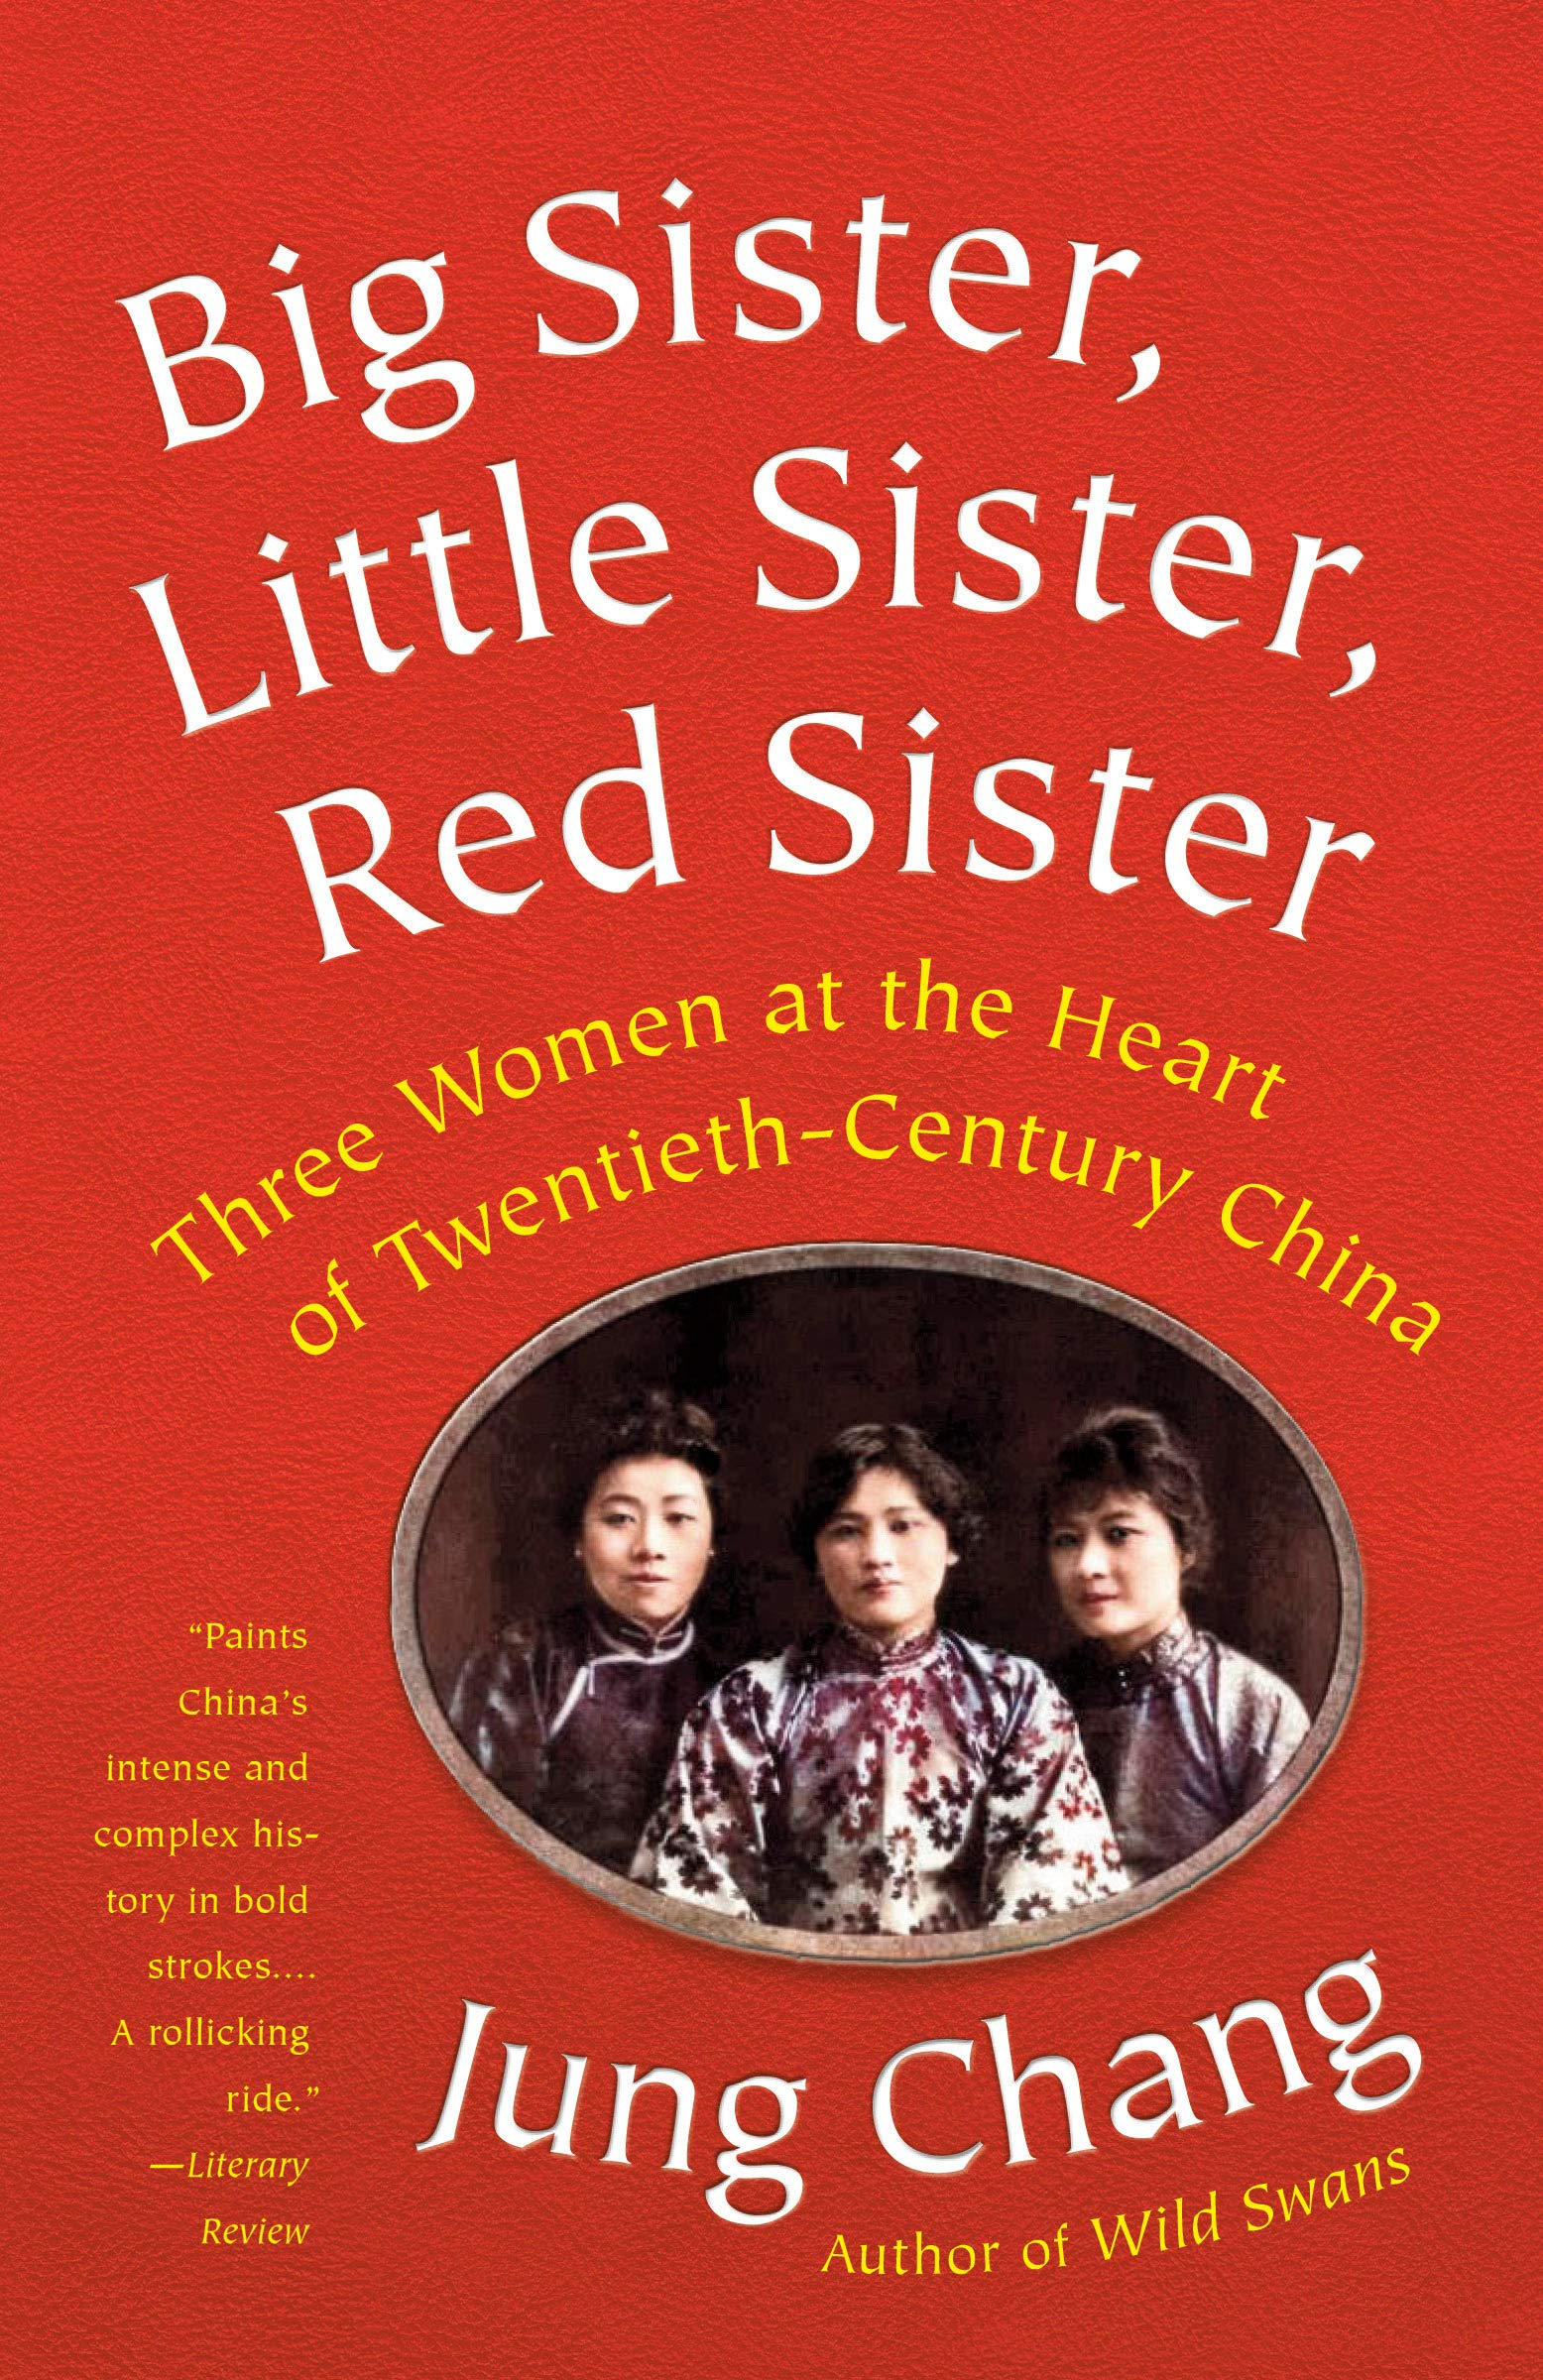 Image OfBig Sister, Little Sister, Red Sister: Three Women At The Heart Of Twentieth-Century China